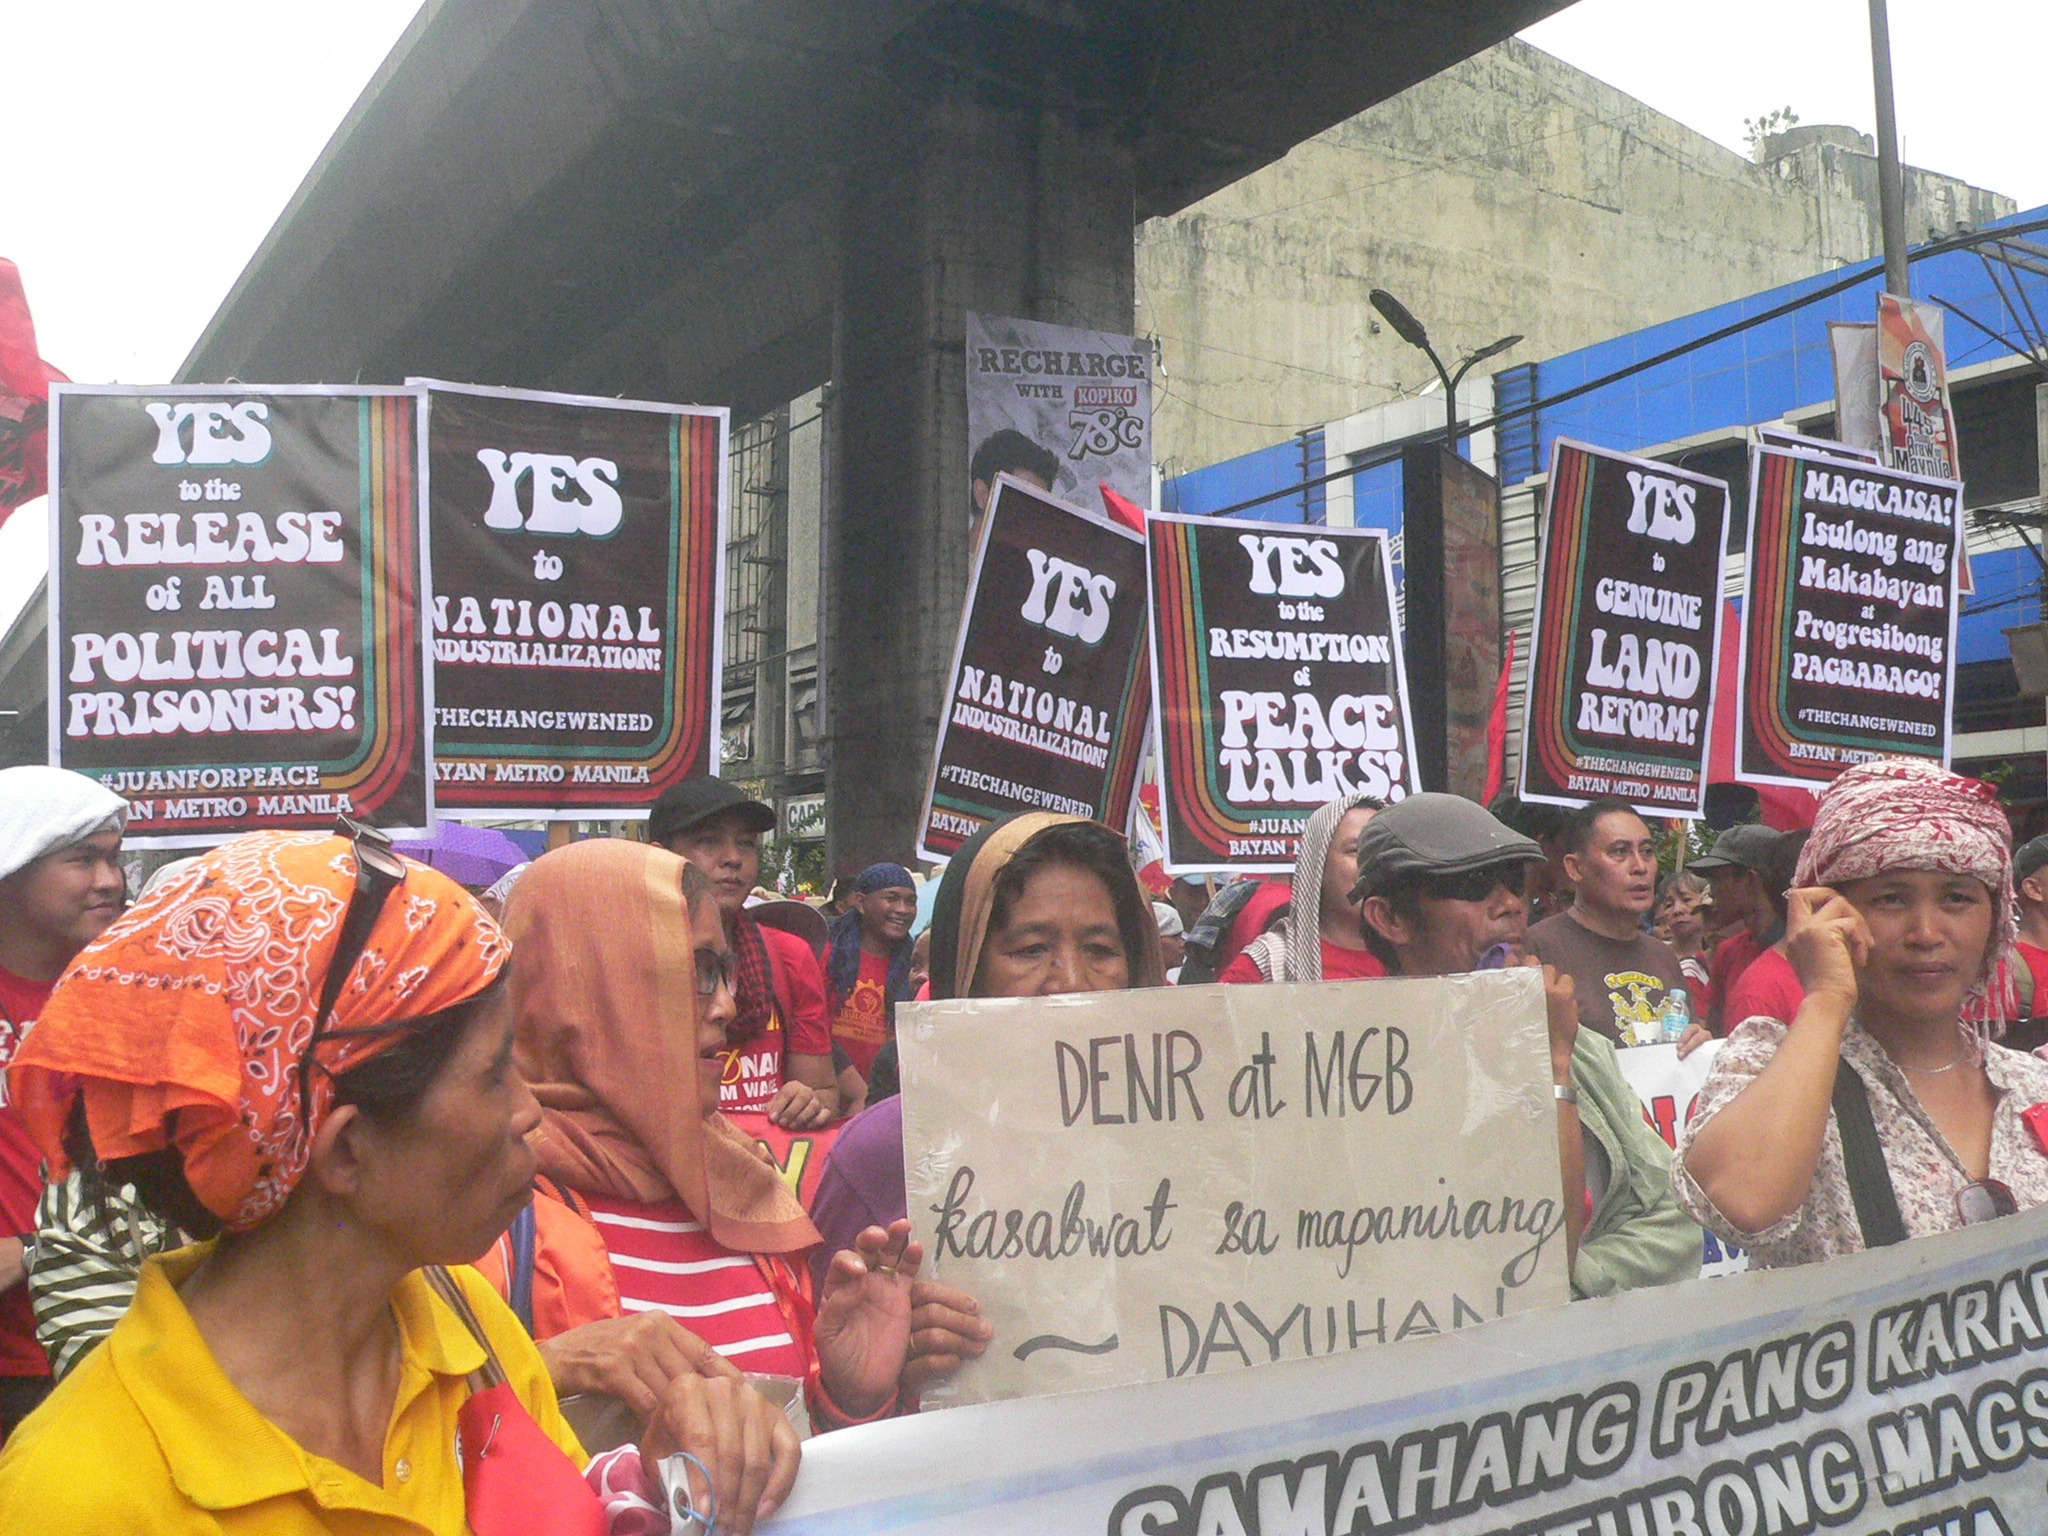 Members of Sapakmmi from Didipio, Kasibu, Nueva Vizcaya join the Mendiola rally on June 30 to call for a stop of OceanaGold's mining. (Photo by Dee Ayroso/Bulatlat)